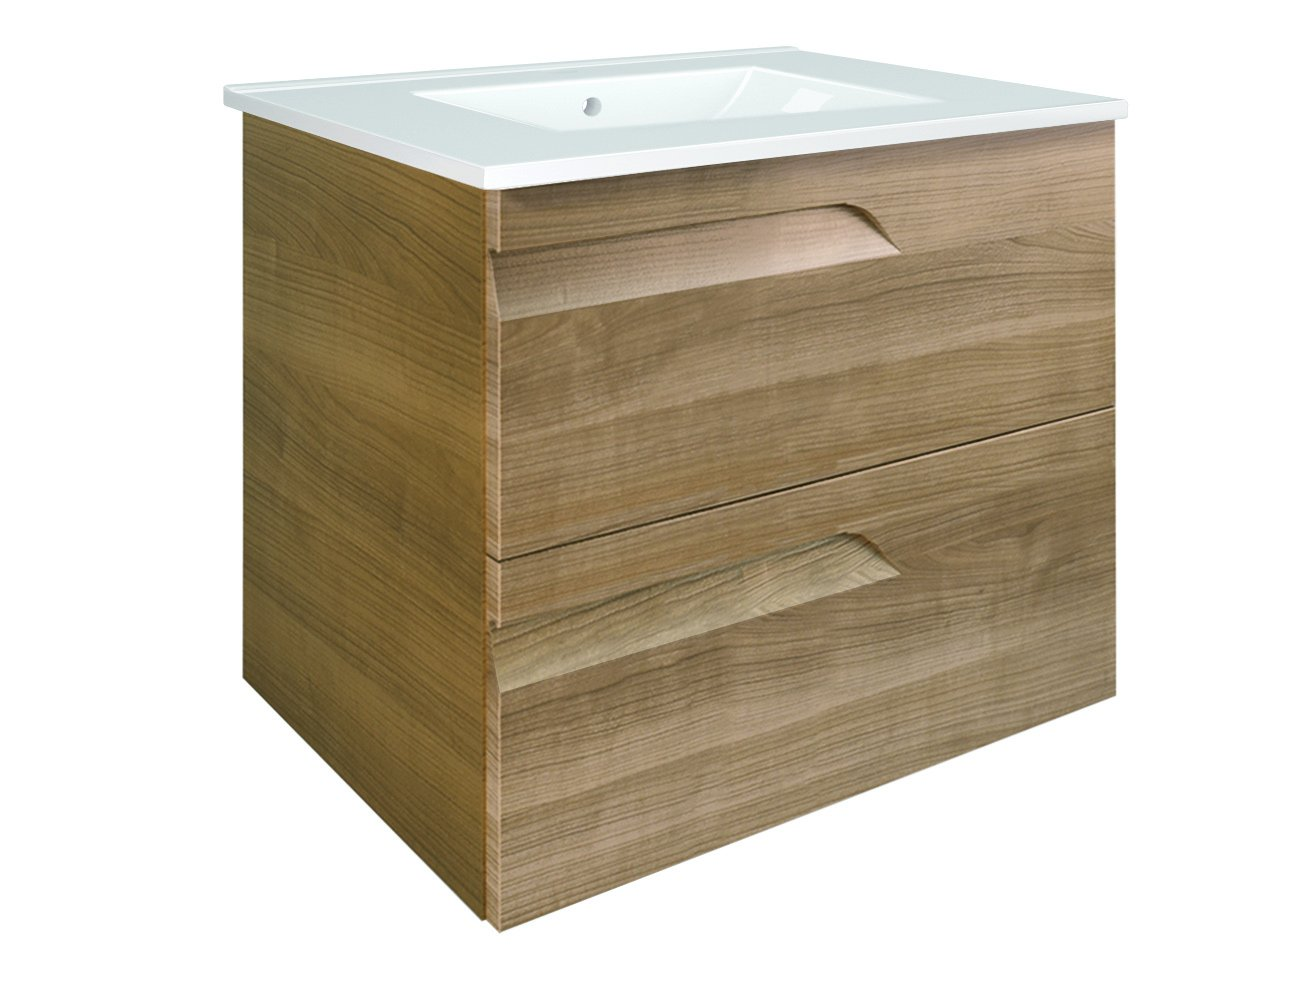 Eviva EVVN23-24WN-Vitale Vitta 24 Walnut bathroom vanity Combination - Assembled & ready for installation 1 pre-drilled sink hole 3 functioning drawers - bathroom-vanities, bathroom-fixtures-hardware, bathroom - 61aRerqMl%2BL -